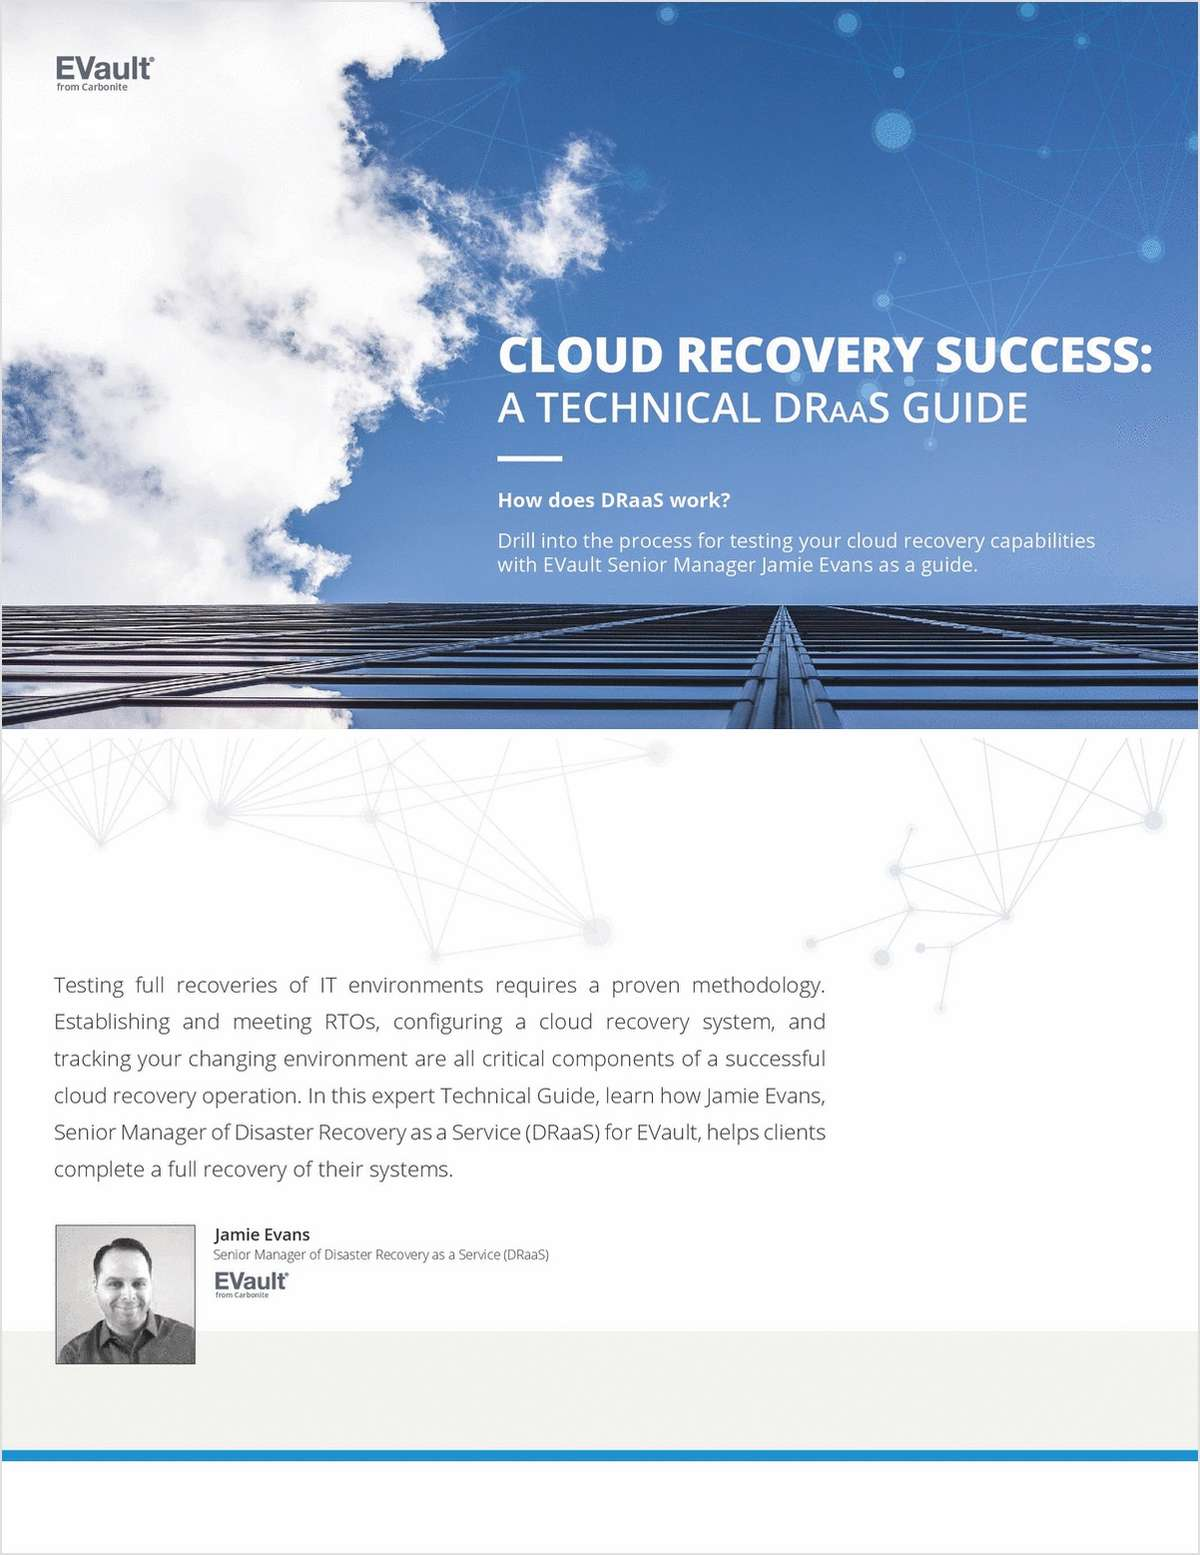 Cloud Recovery Success: A Technical DRaaS Guide